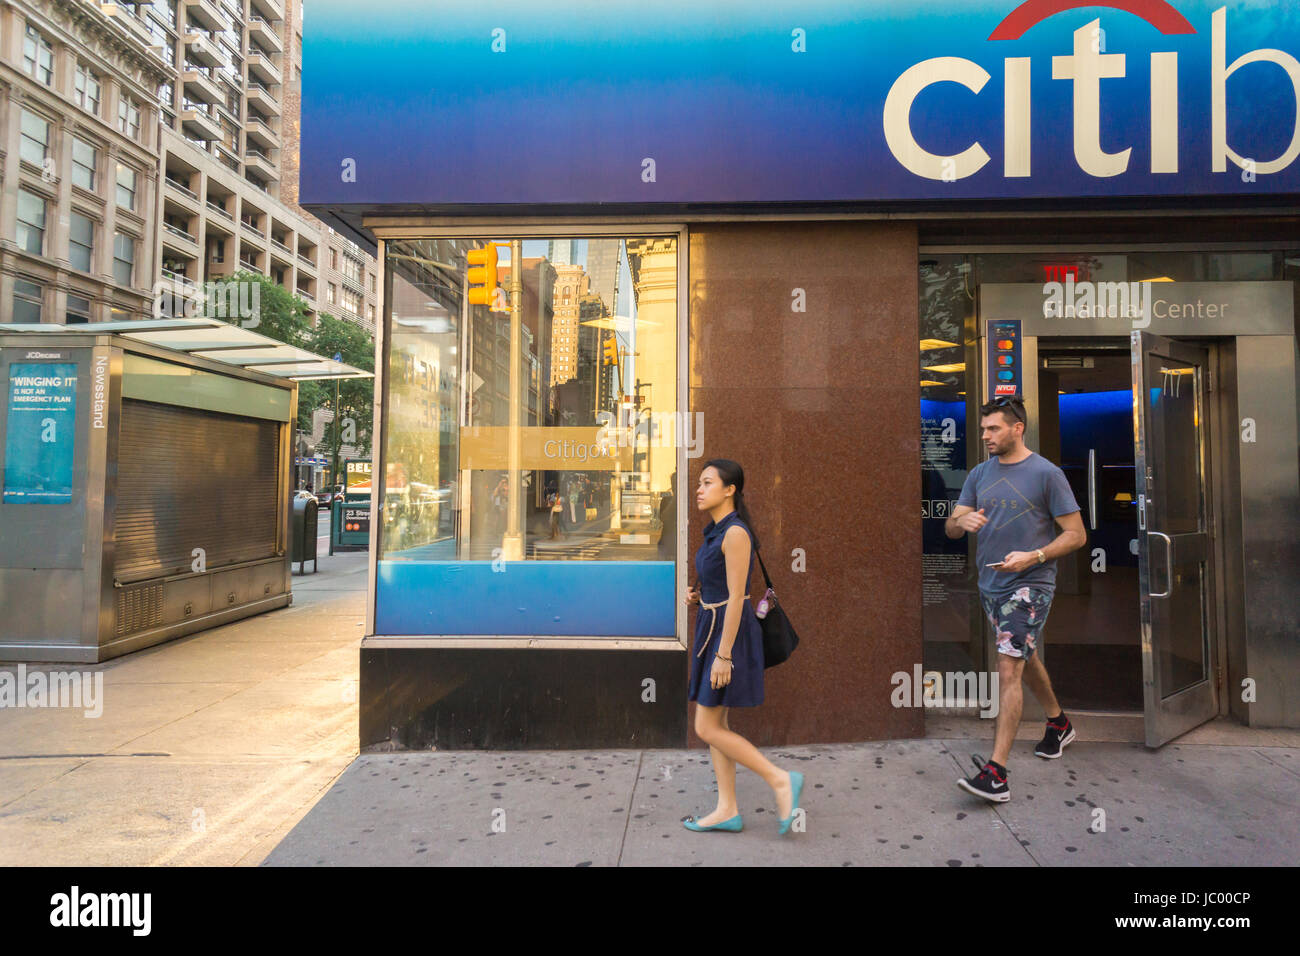 A branch of Citibank in the Chelsea neighborhhod in New York on Sunday, June 11, 2017. (© Richard B. Levine) - Stock Image